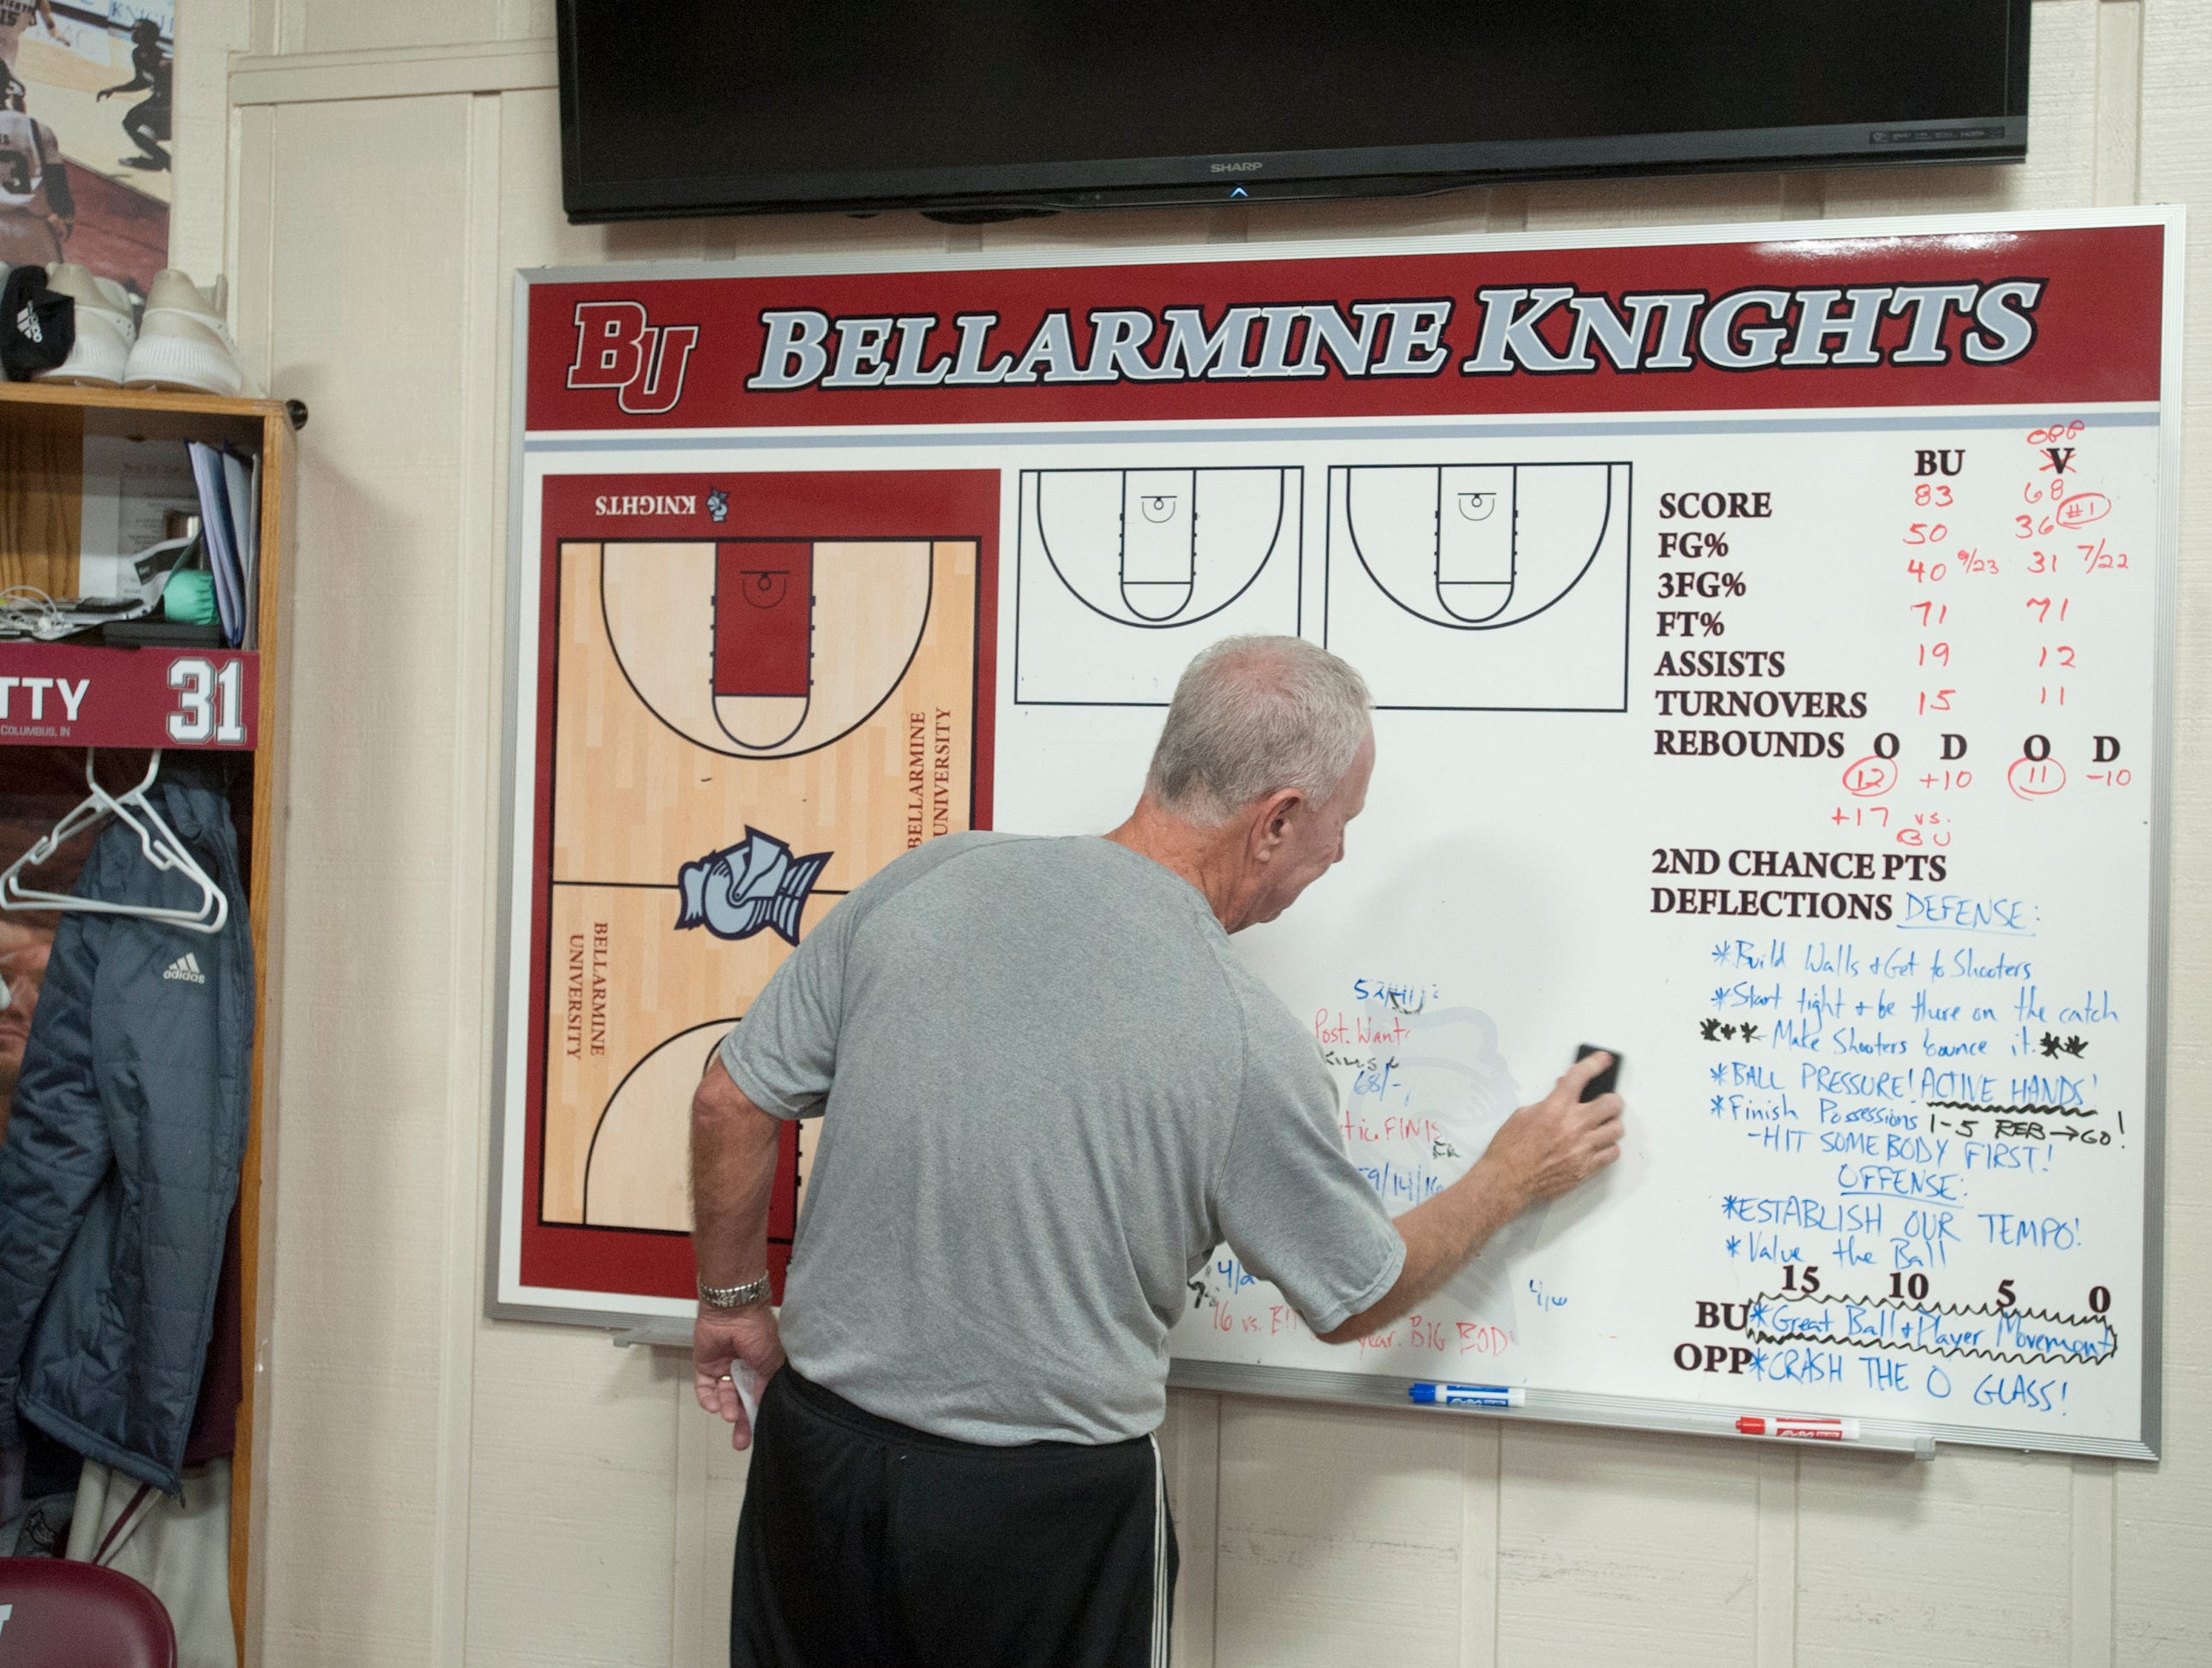 With his players warming up outside of the locker room, Bellarmine head basketball coach Scott Davenport cleans the whiteboard.18 December 2018